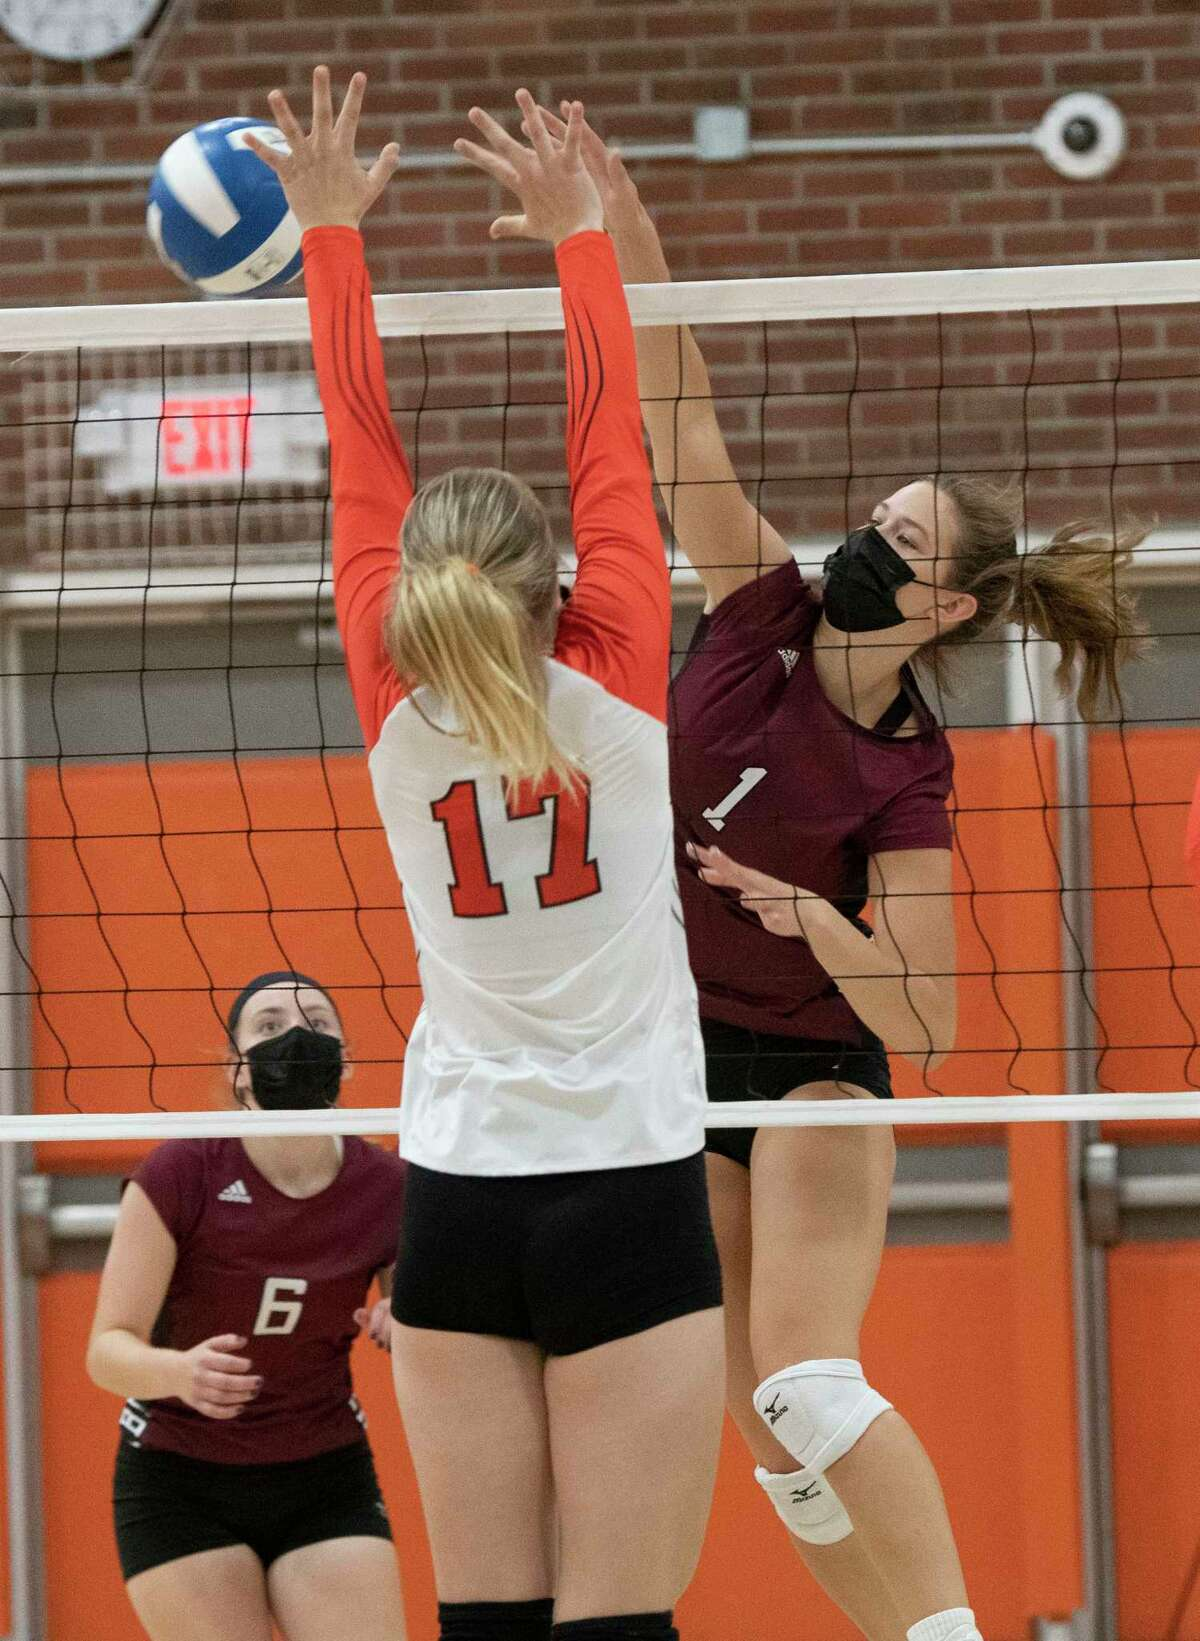 Burnt Hills' Carlie Rzeszotarski, right, hits the ball past Bethlehem's Maren Louridas, #17, during a volleyball match on Tuesday, Sept. 28, 2021 in Delmar, N.Y.